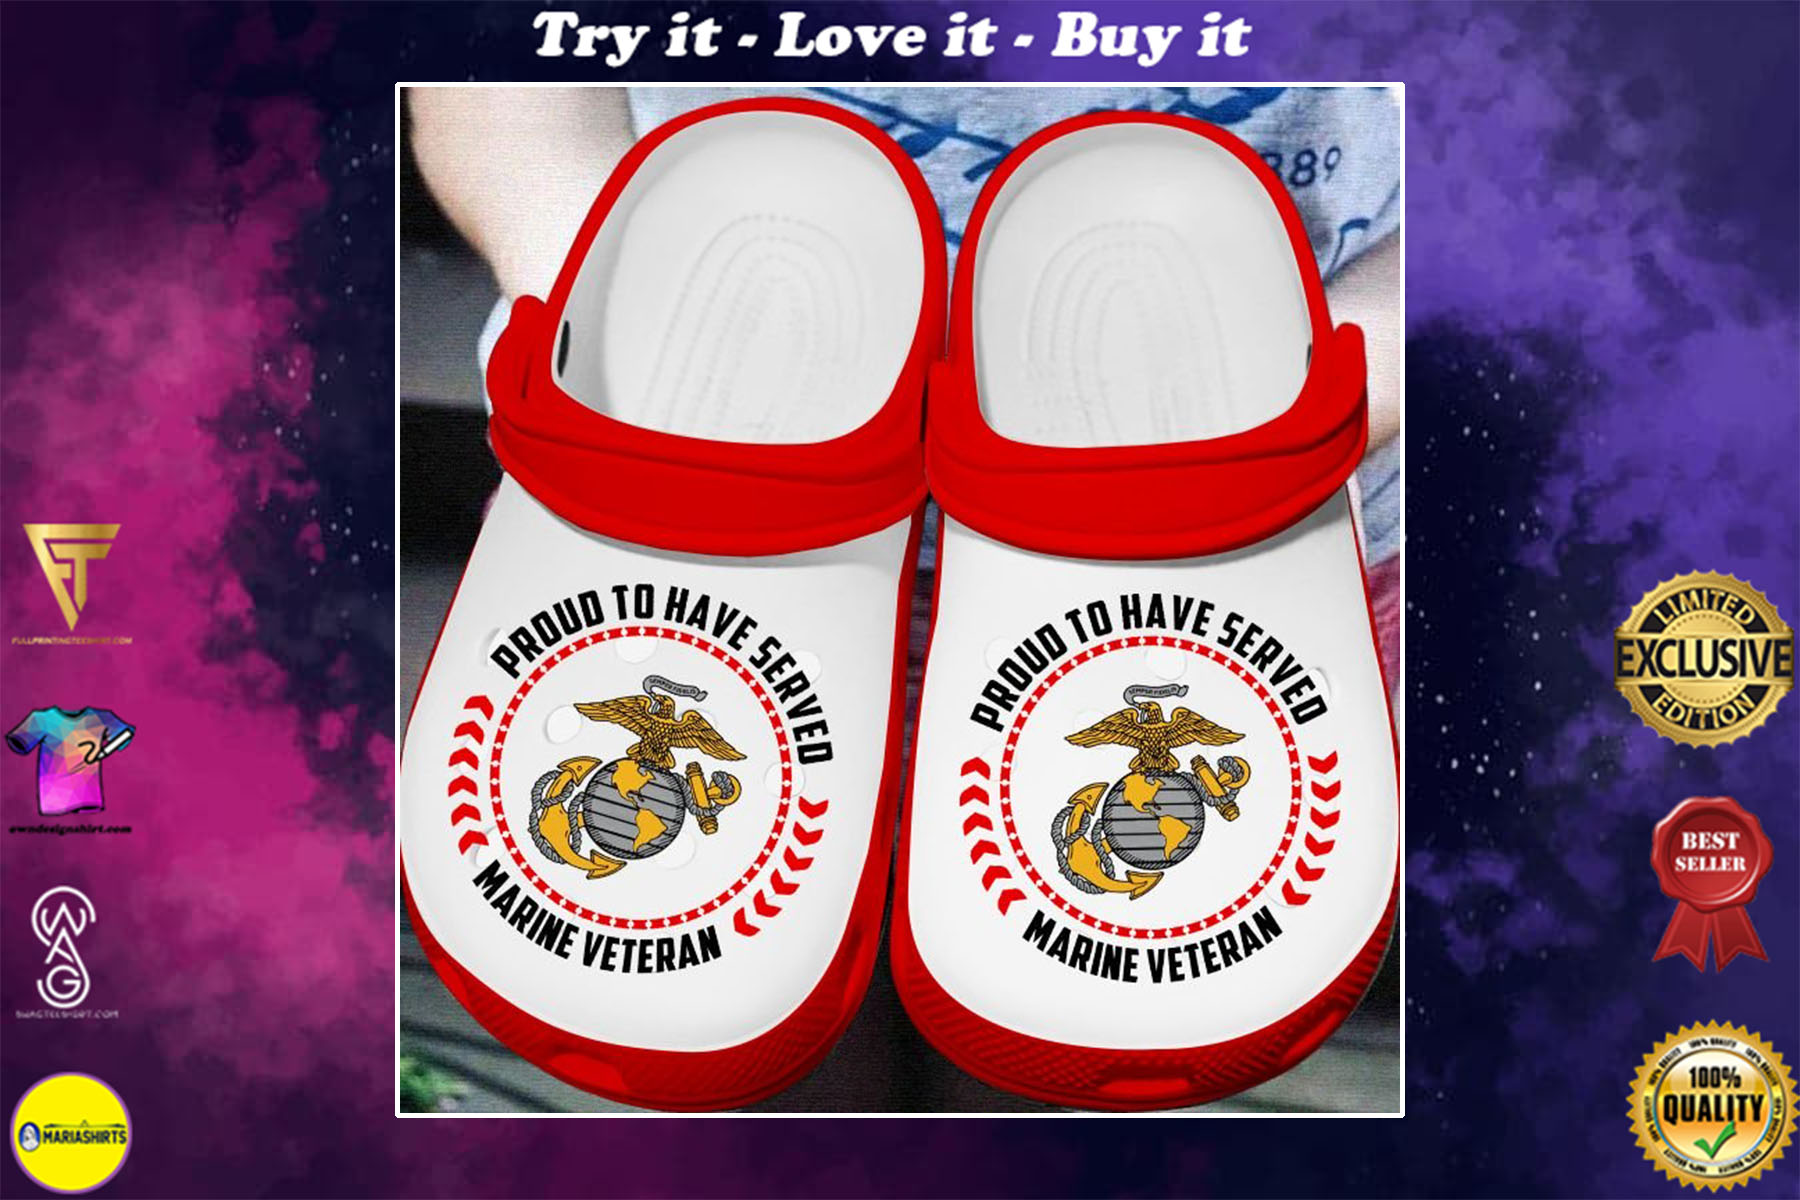 [special edition] proud to have served marine veteran crocs shoes - maria